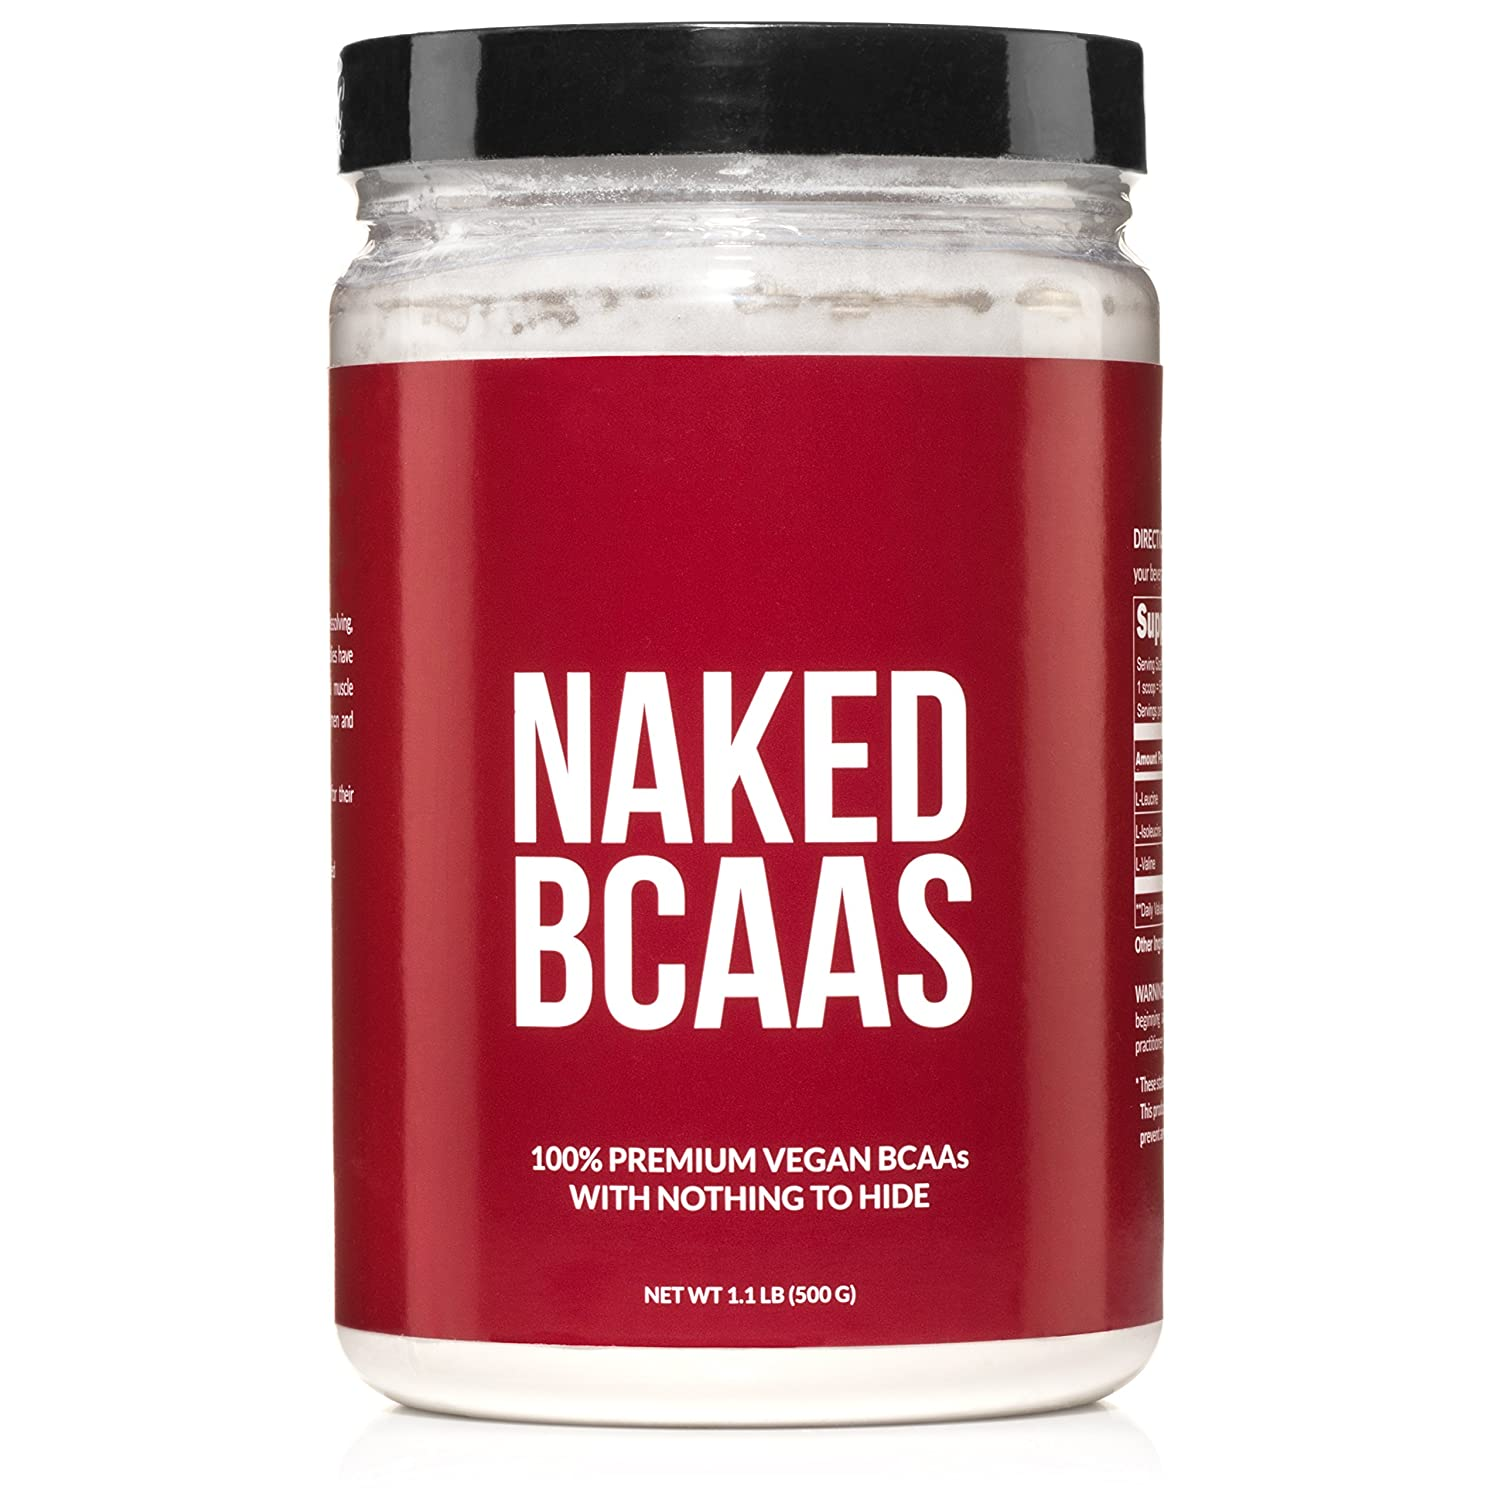 Naked BCAAs Amino Acids Powder – 100 Servings – Vegan Unflavored Branched Chain Amino Acids 500 Grams 100 Pure 2 1 1 Formula – Instantized All Natural BCAA Powder Supplement to Increase Gains